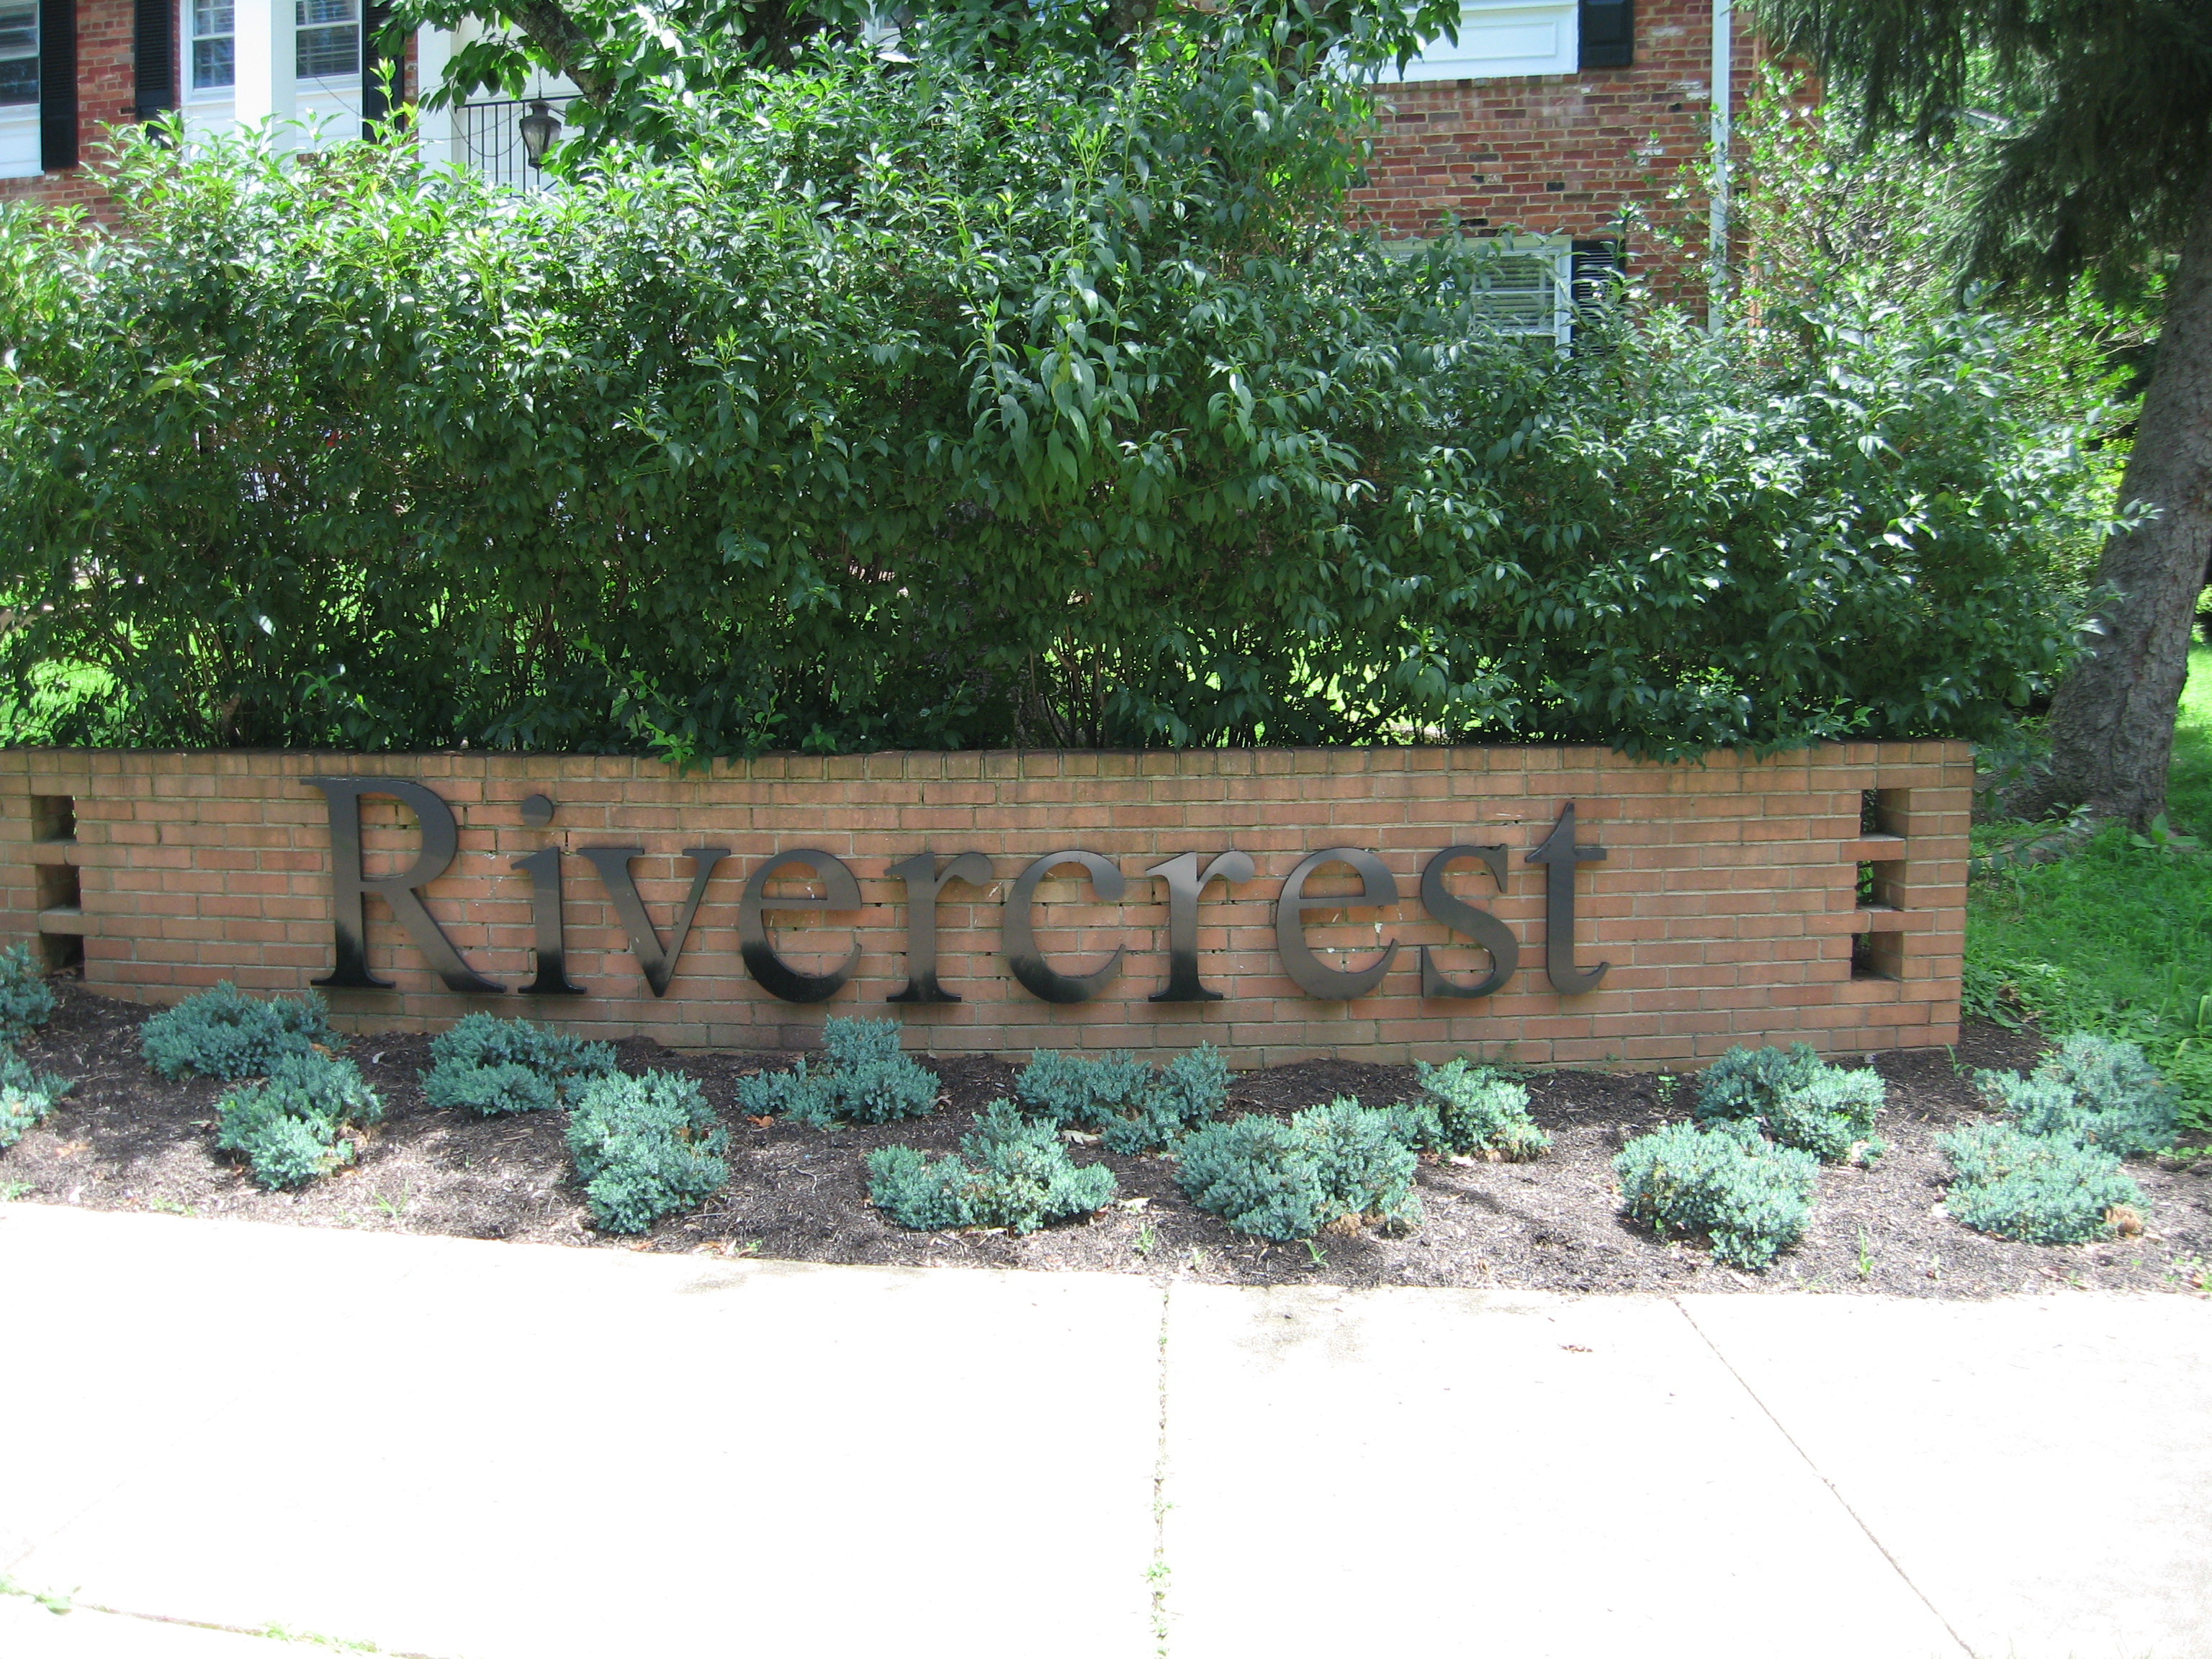 rivercrest real estate u0026 homes for sale 22207 mike pugh